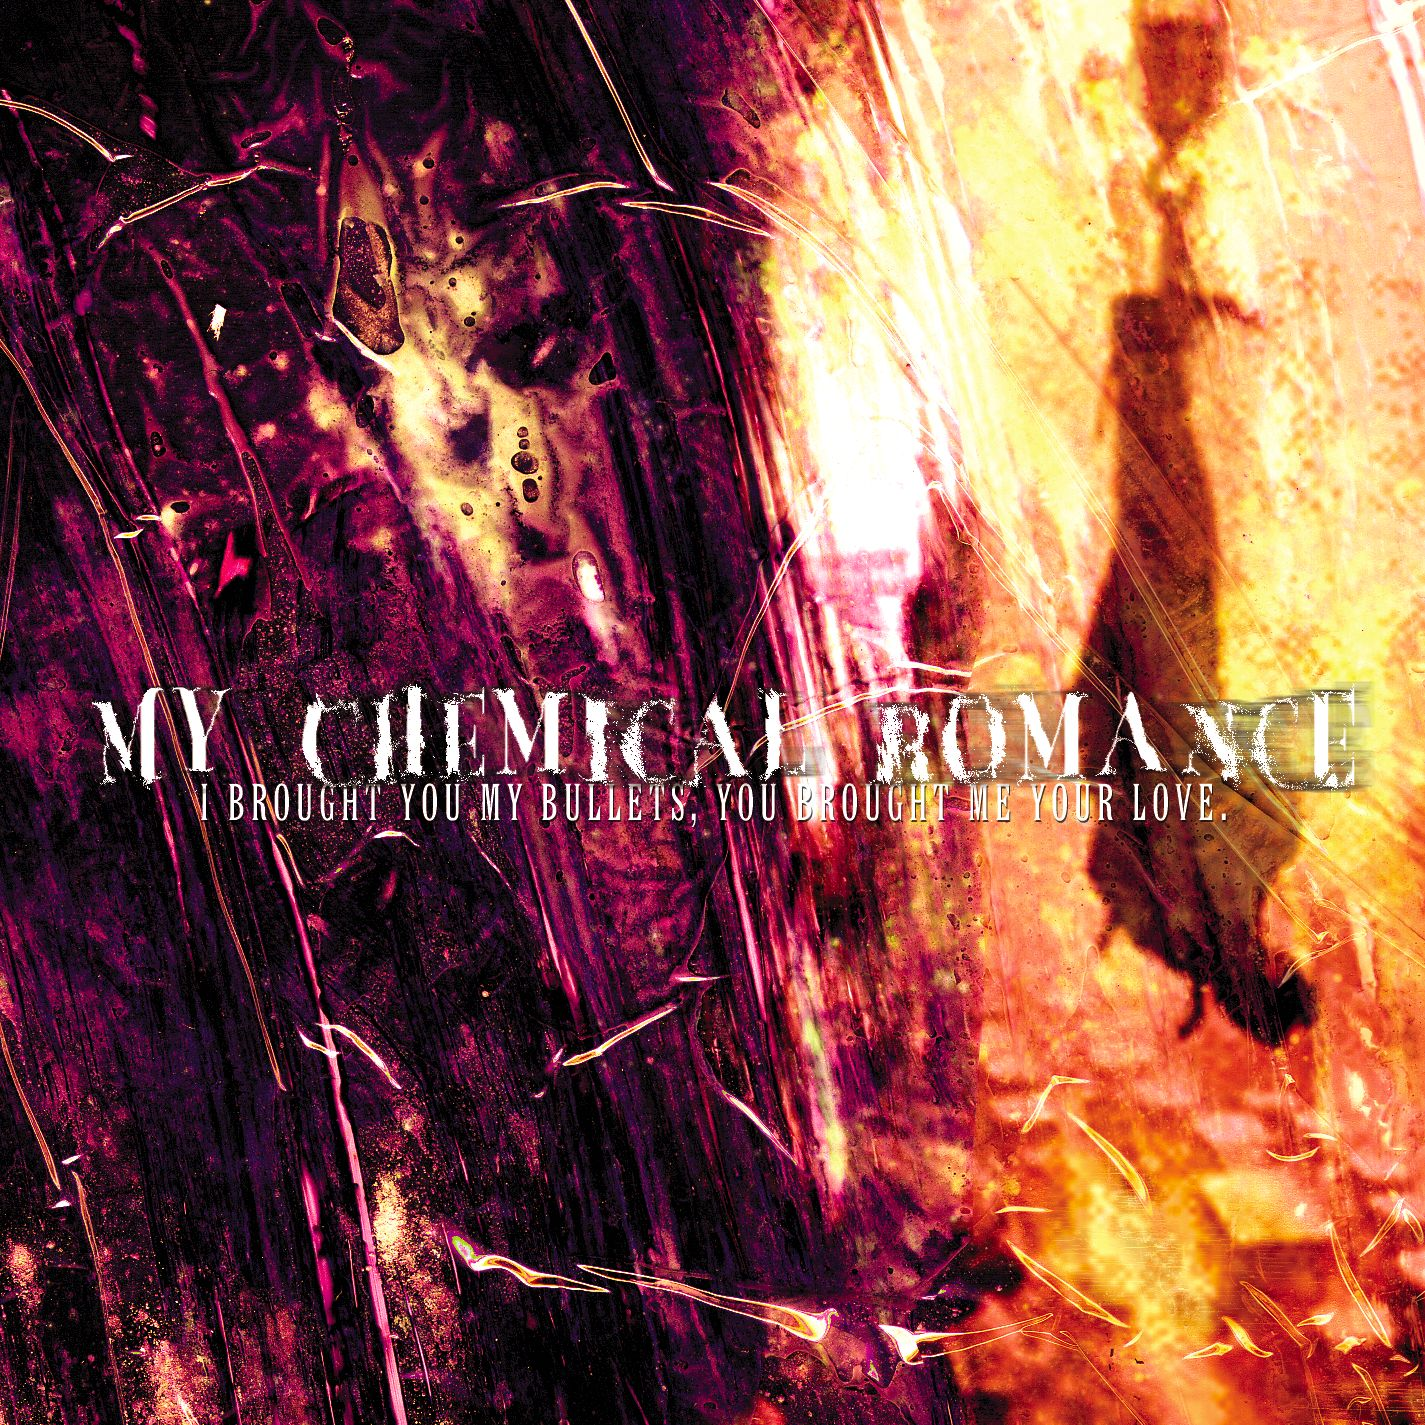 What is your Favorite My Chemical Romance album?